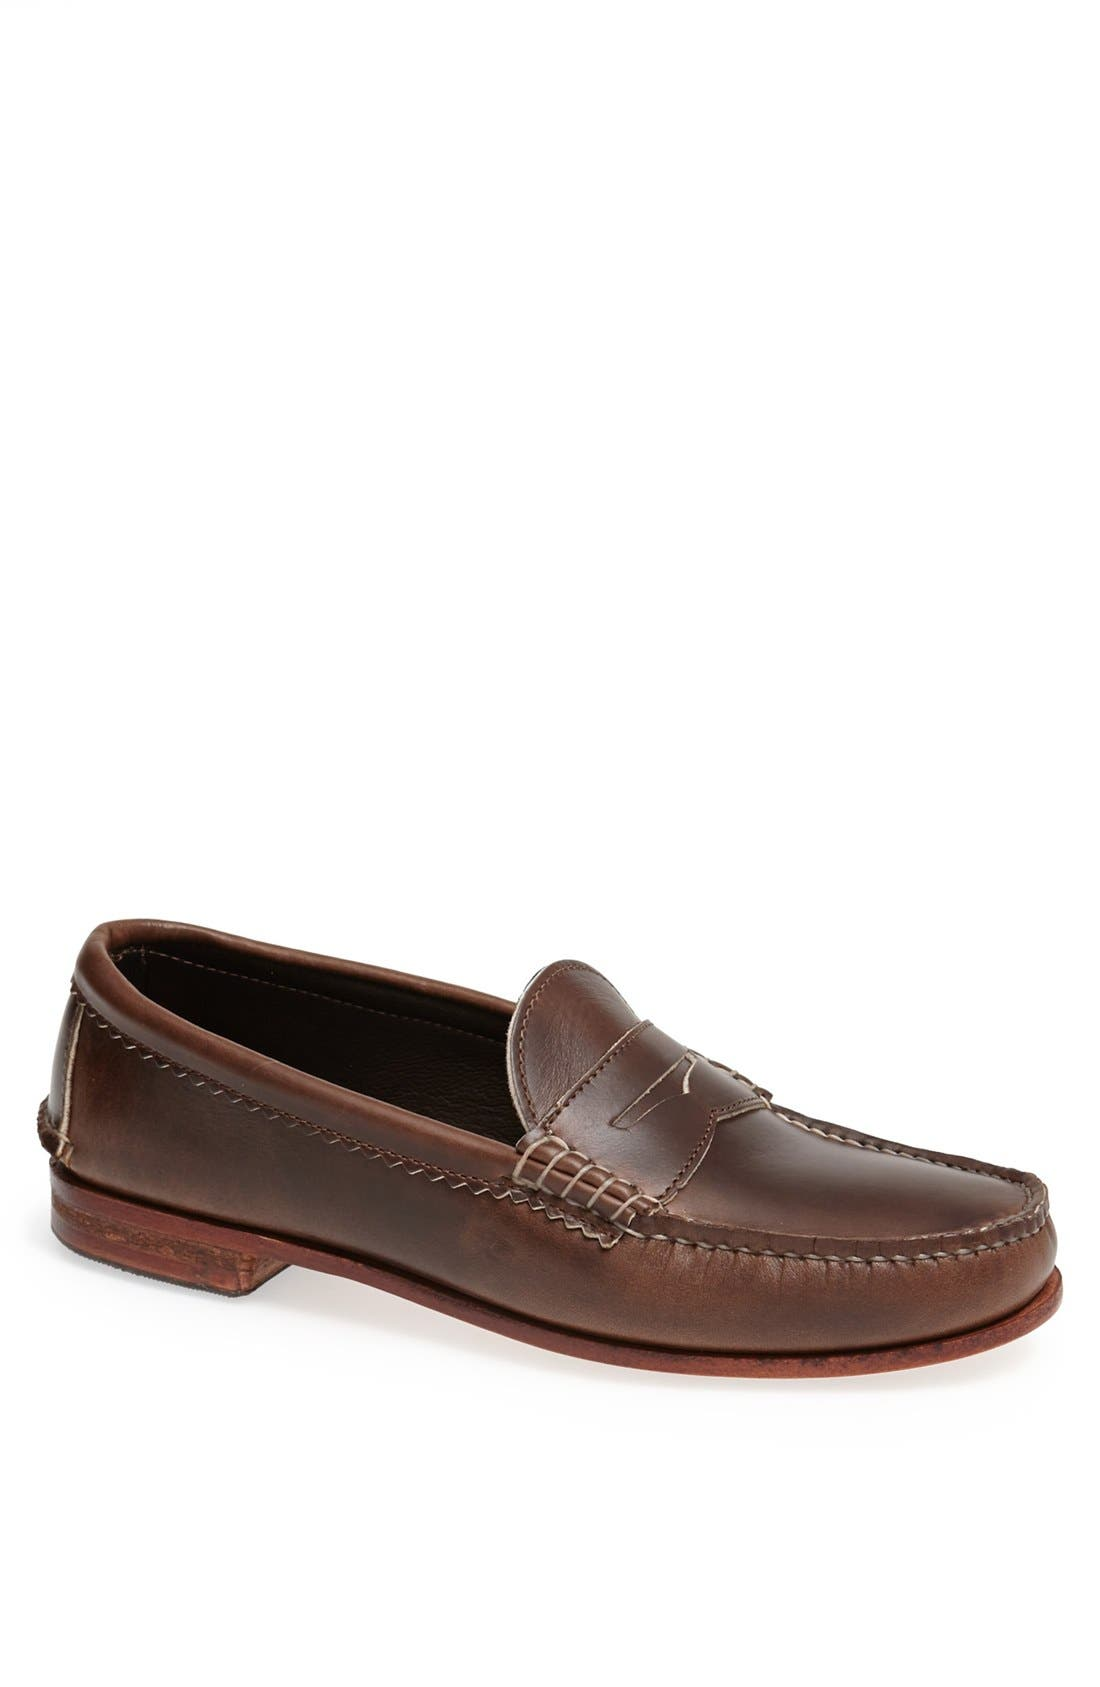 QUODDY,                             'True' Penny Loafer,                             Main thumbnail 1, color,                             204